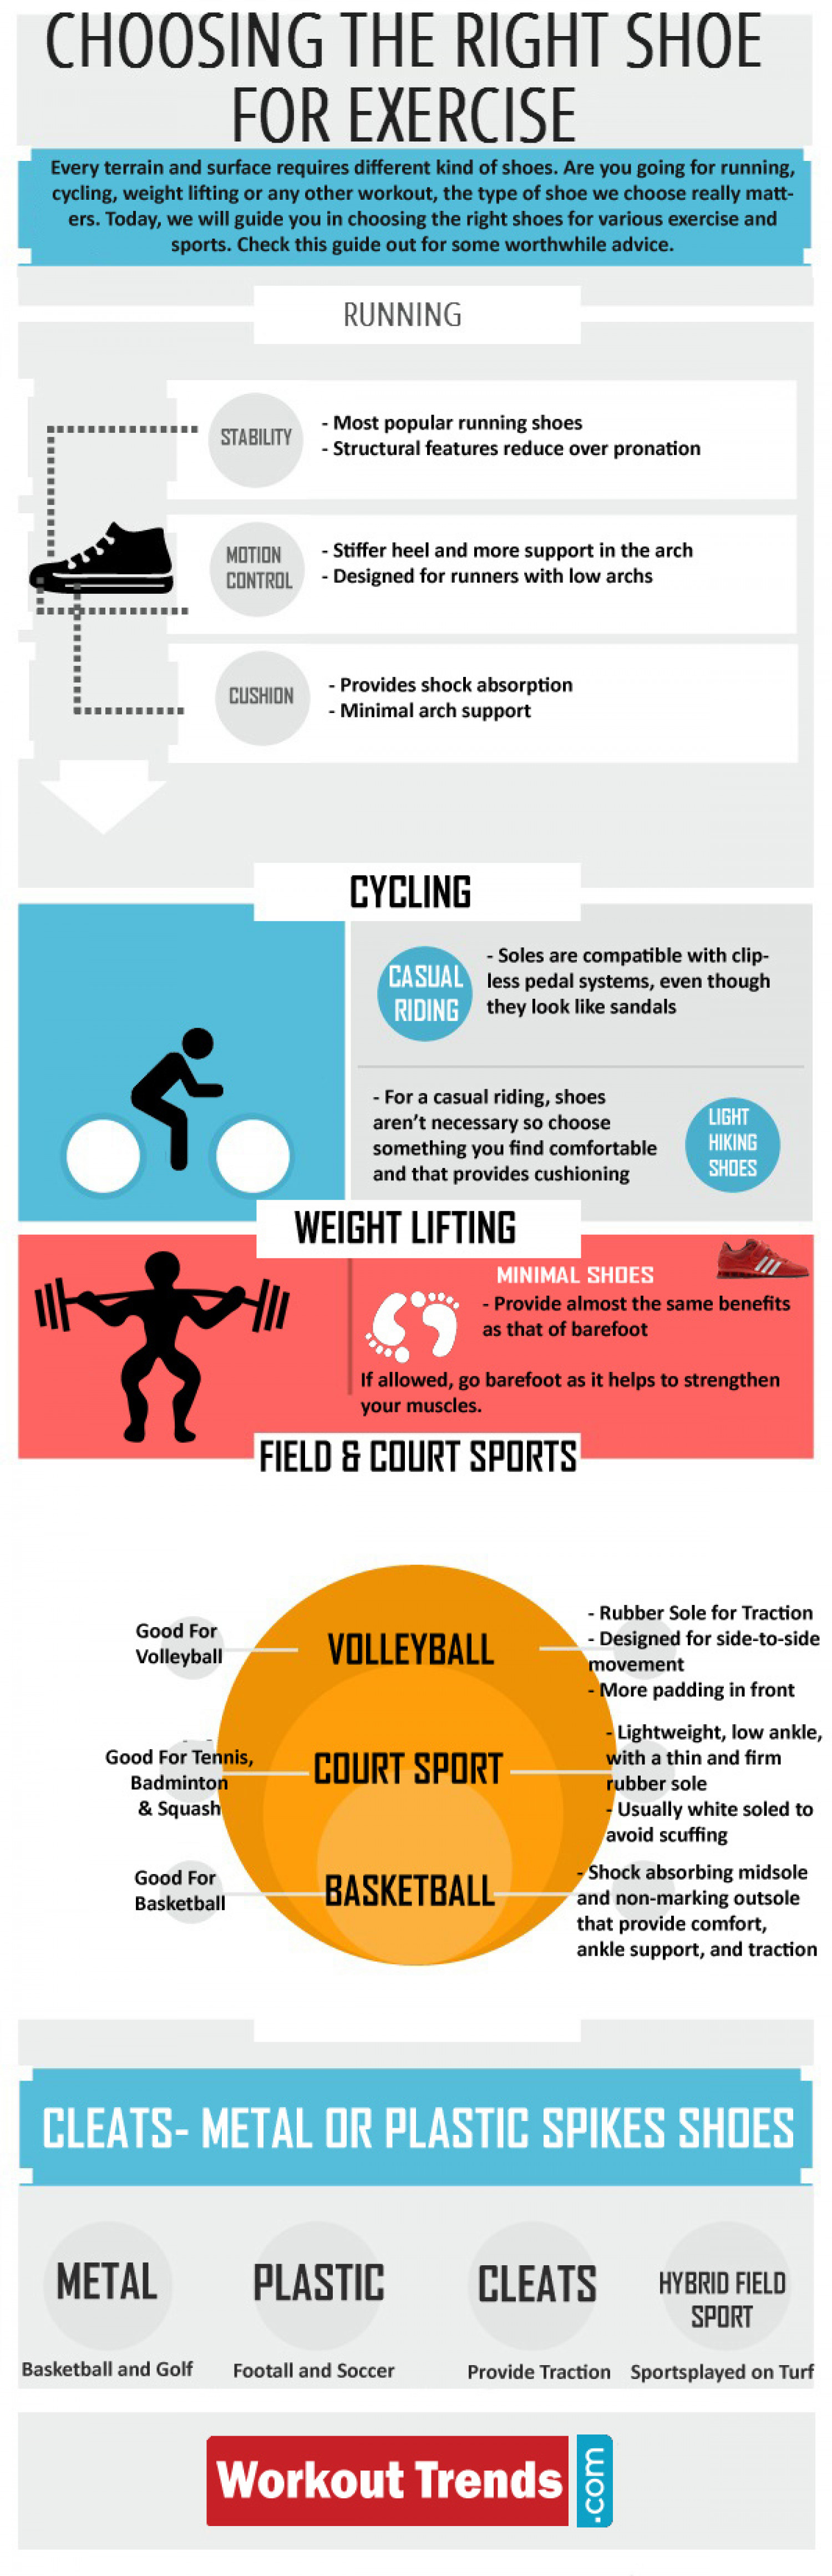 Choosing the Right Shoe for Exercise Infographic